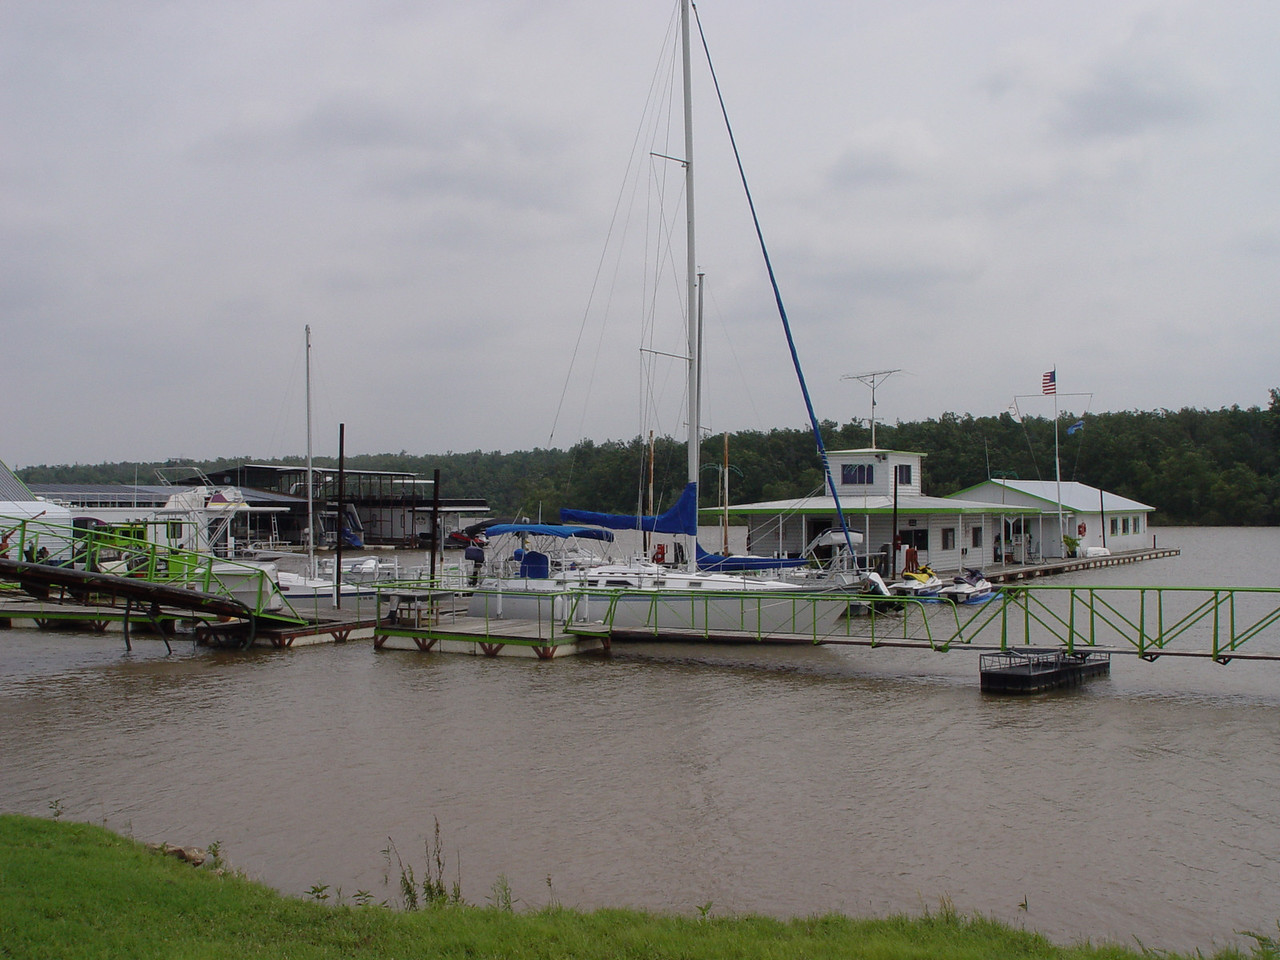 2007-06-12-houseboat-Lake-Eufaula 032